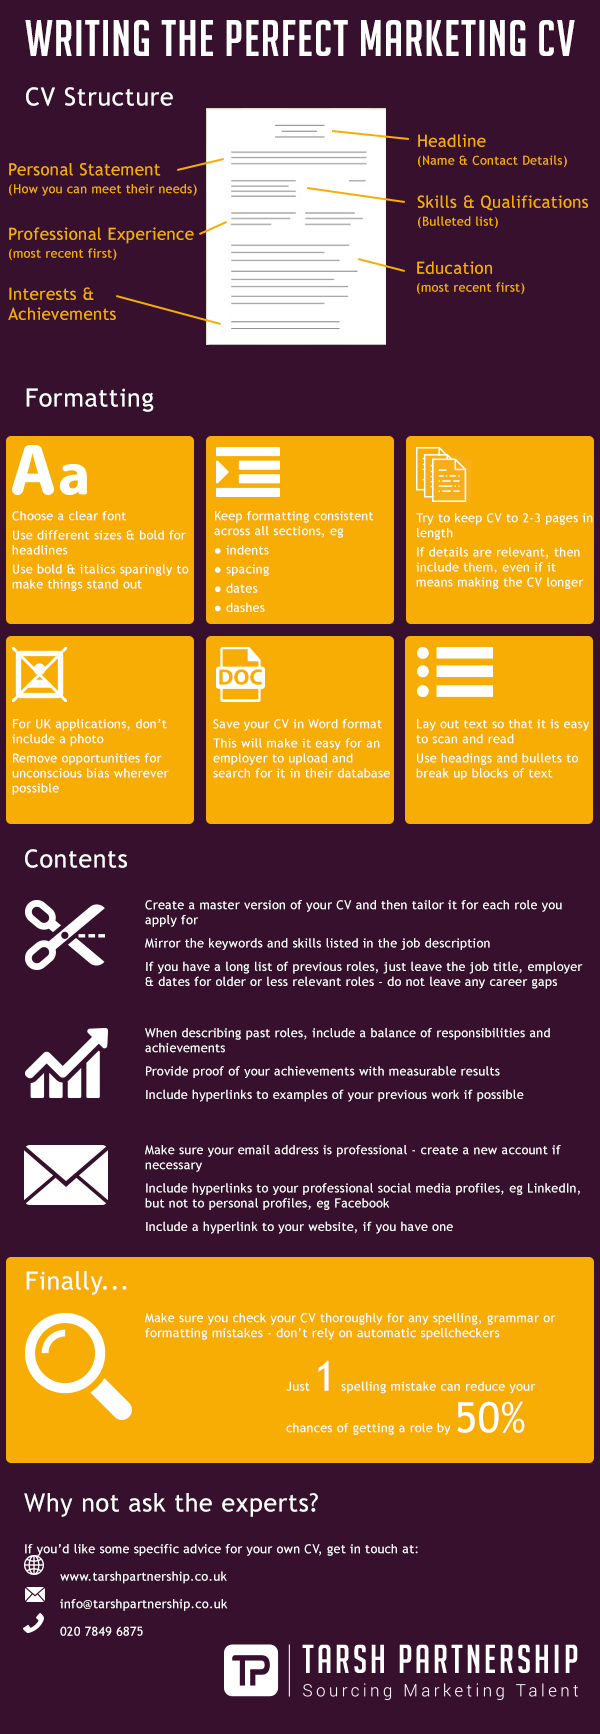 Writing the perfect marketing CV infographic